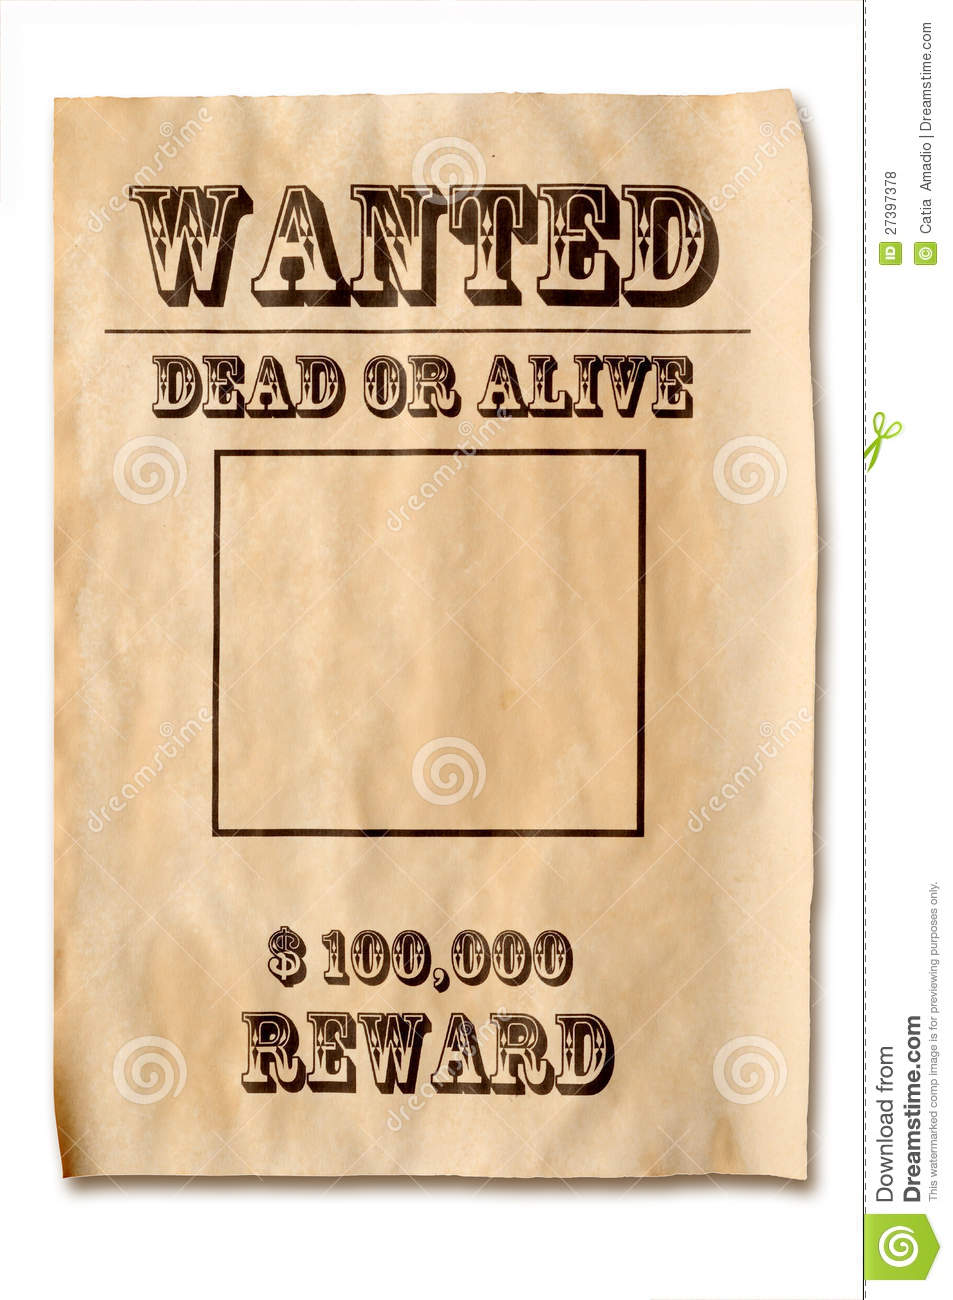 Wanted Poster With Reward Royalty Free Stock Photos - Image: 27397378